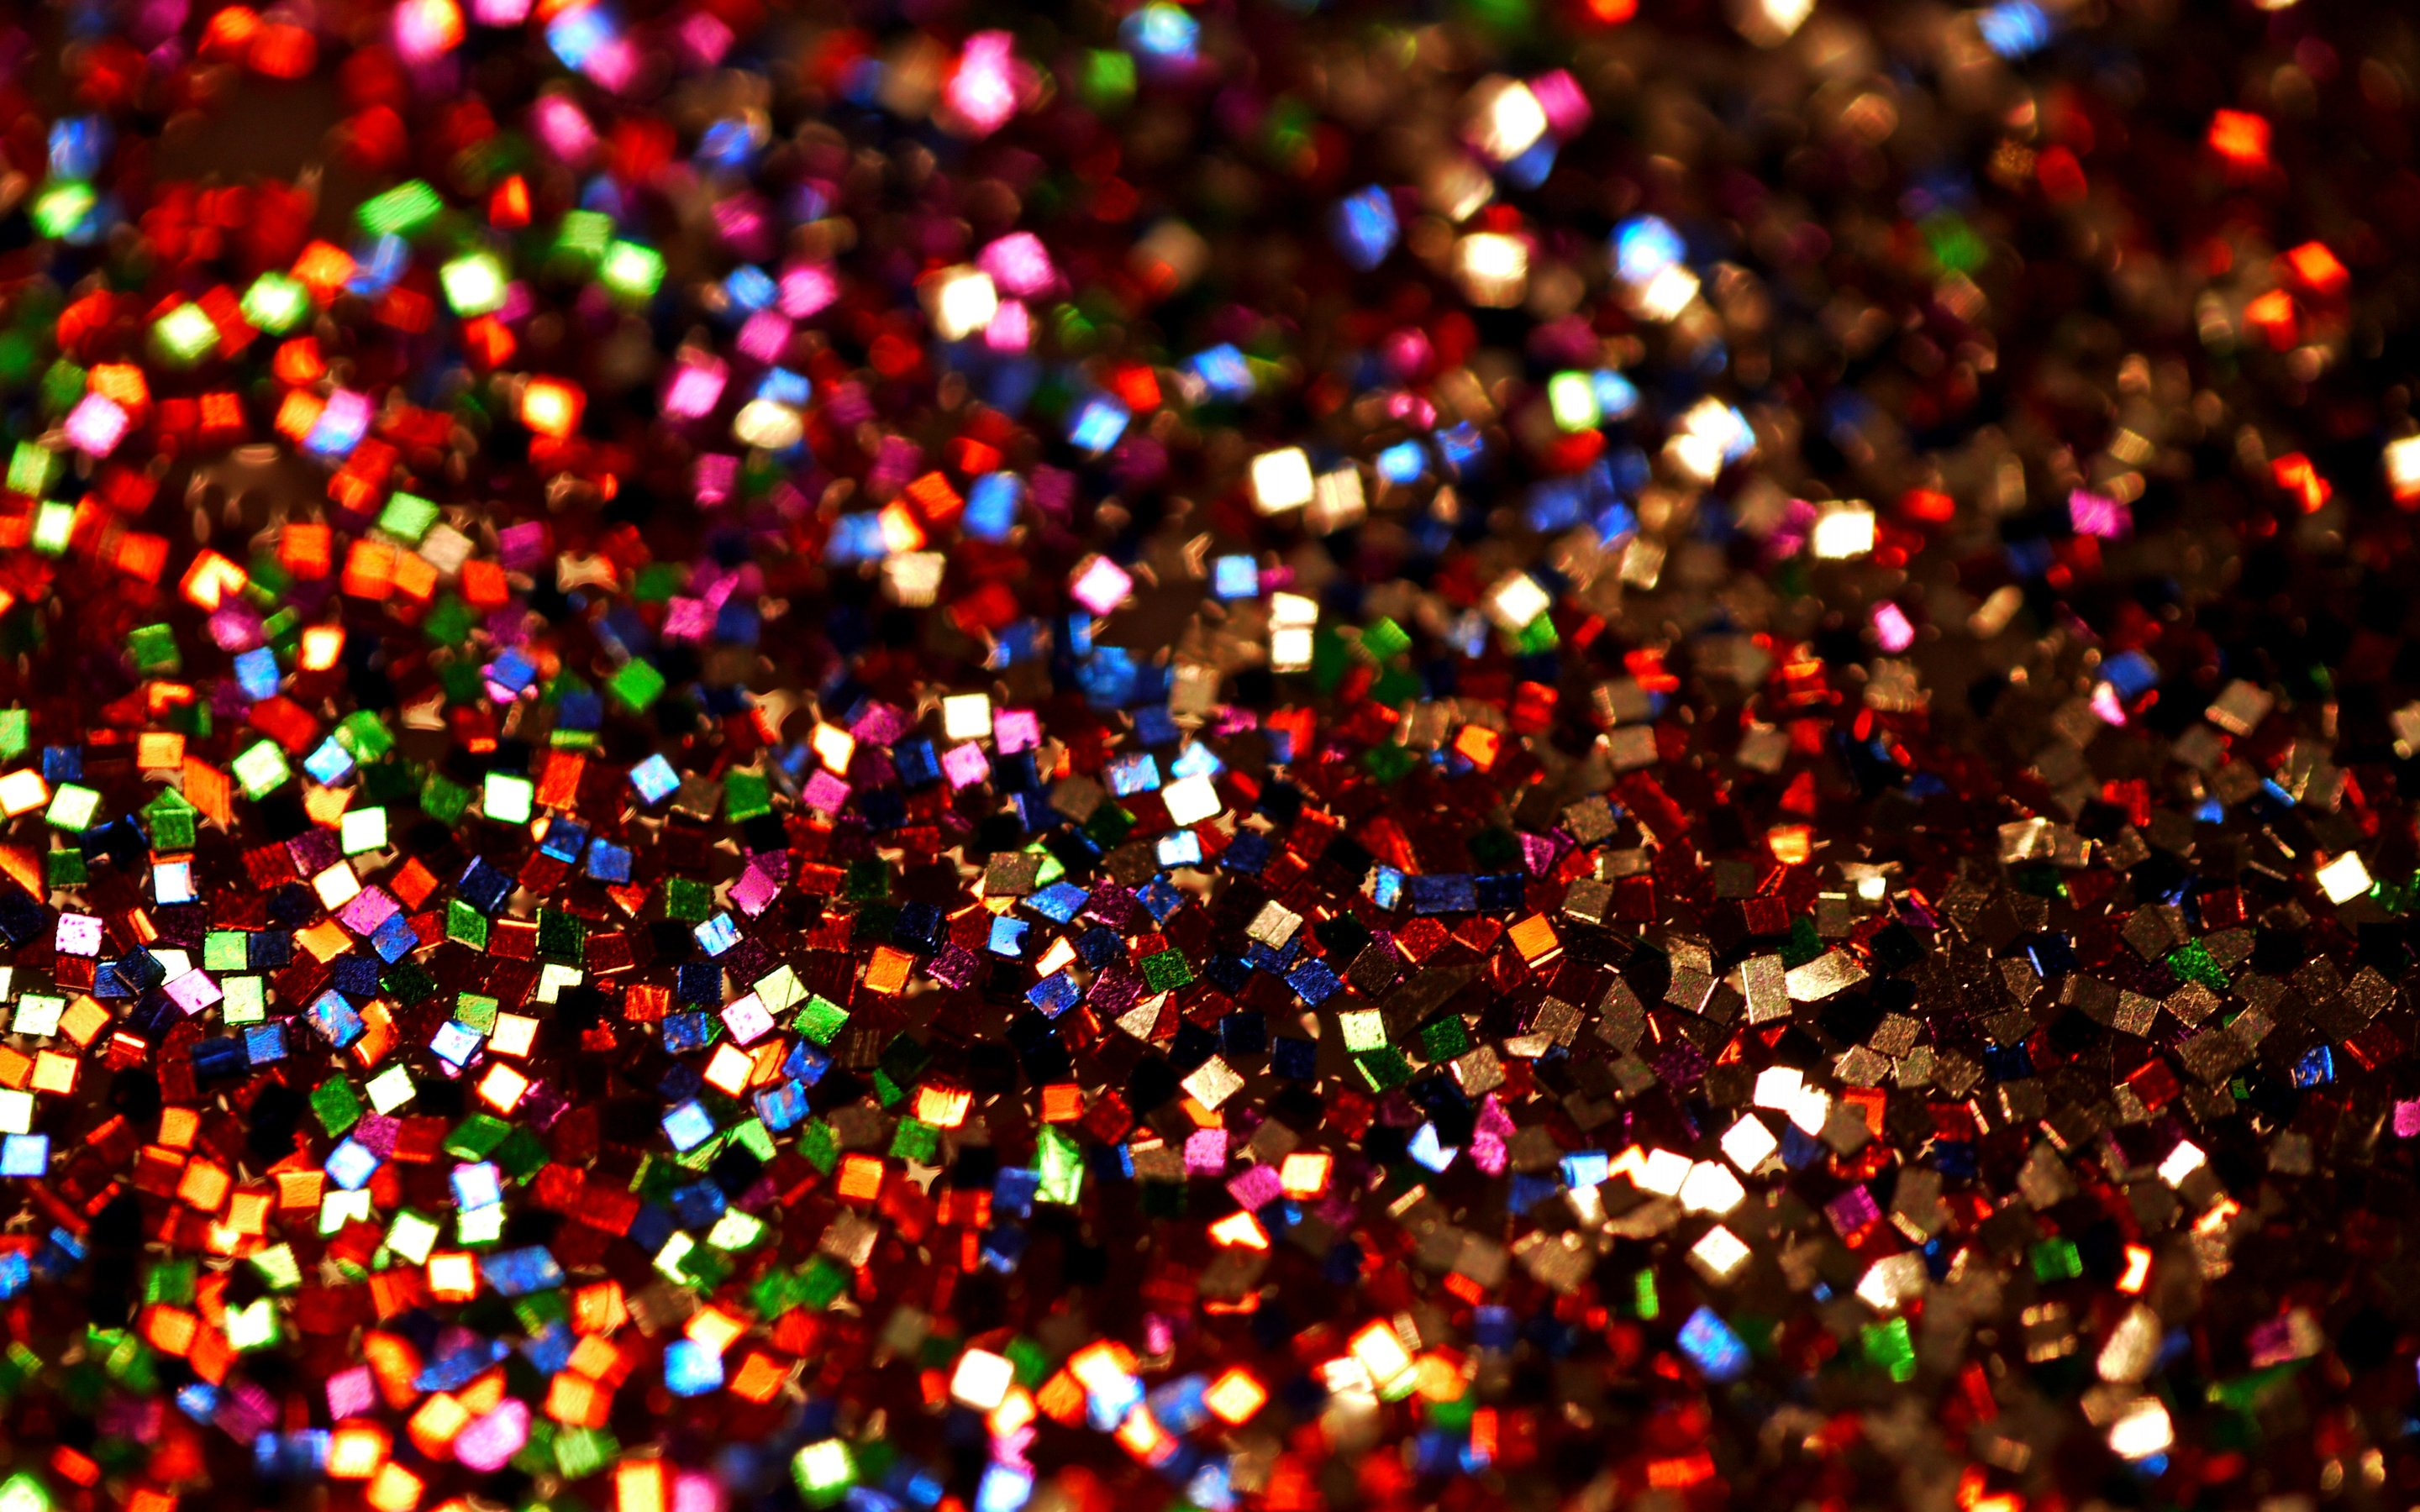 Sparkly Wallpaper Amazing HDQ Cover Sparkly Pictures 2880x1800